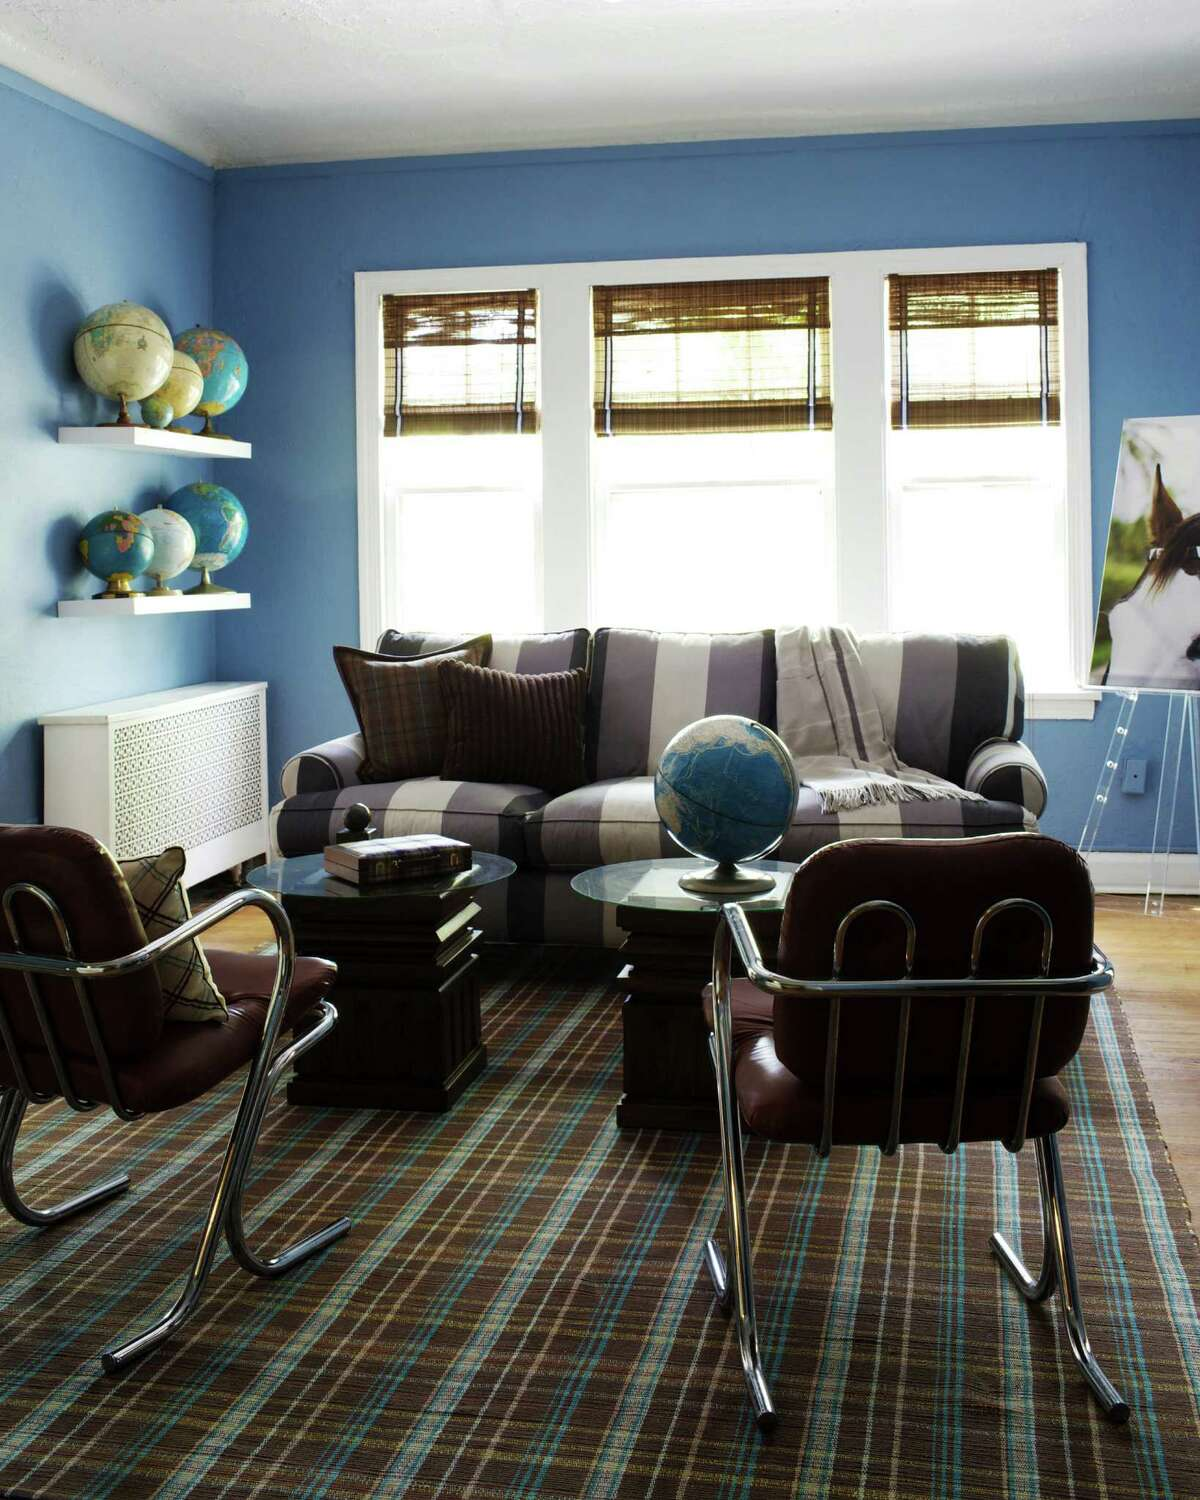 """In this undated publicity photo provided by courtesy Kyle Schuneman, a bold sofa pattern and plaid carpet add personality to a rented apartment in this design by Kyle Schuneman, as seen in """"The First Apartment Book: Cool Design for Small Spaces,"""" by Kyle Schuneman (Potter Style, 2012). (AP Photo/Courtesy Kyle Schuneman, Joe Schmelzer)"""